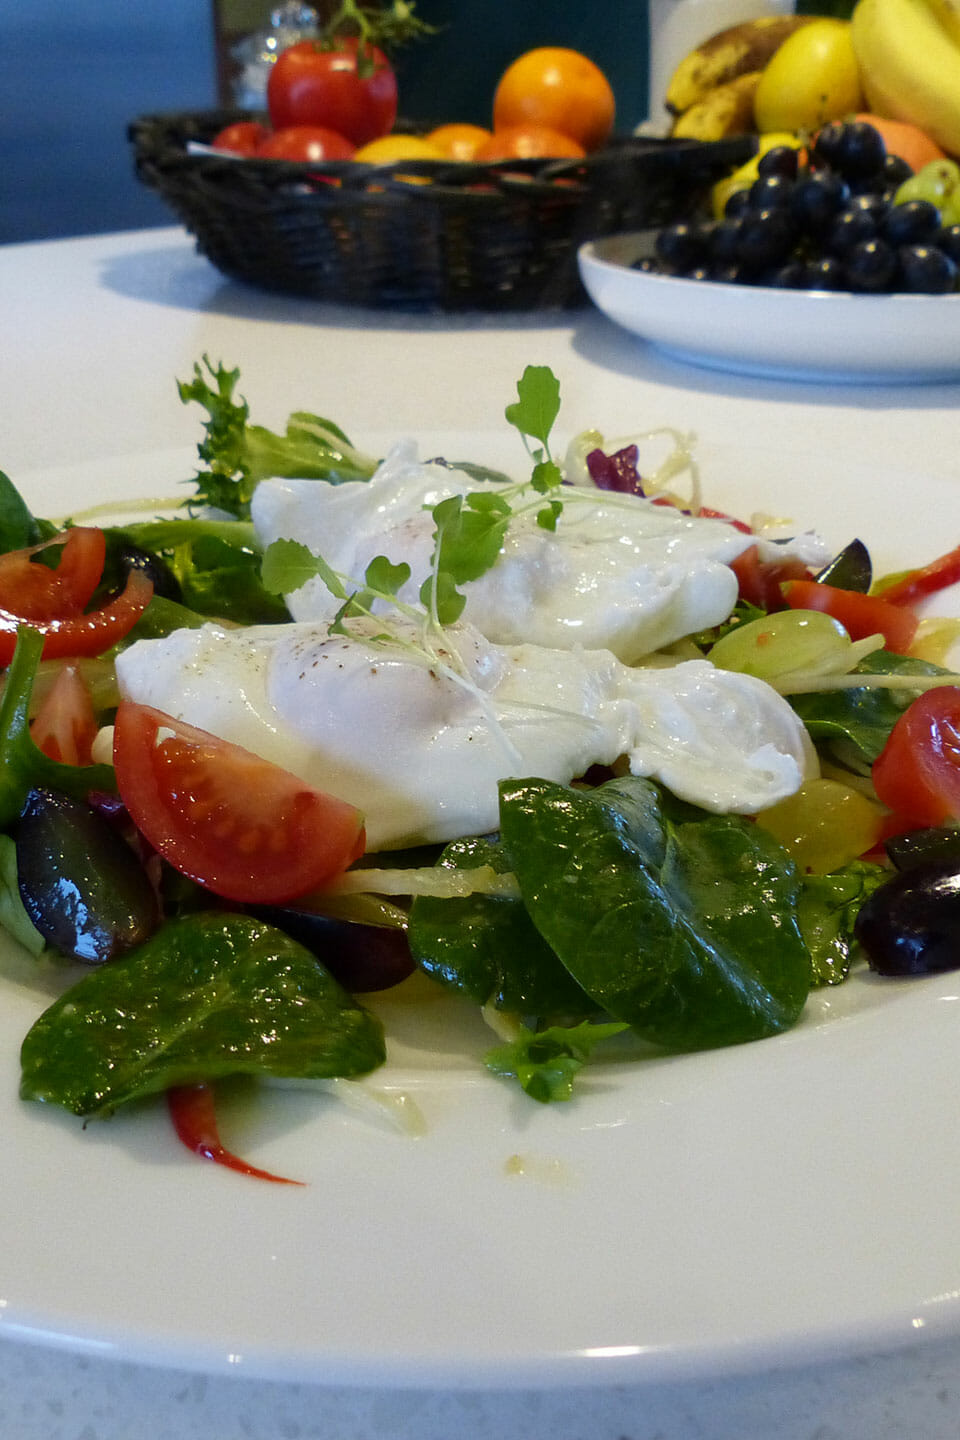 Poached eggs with salad